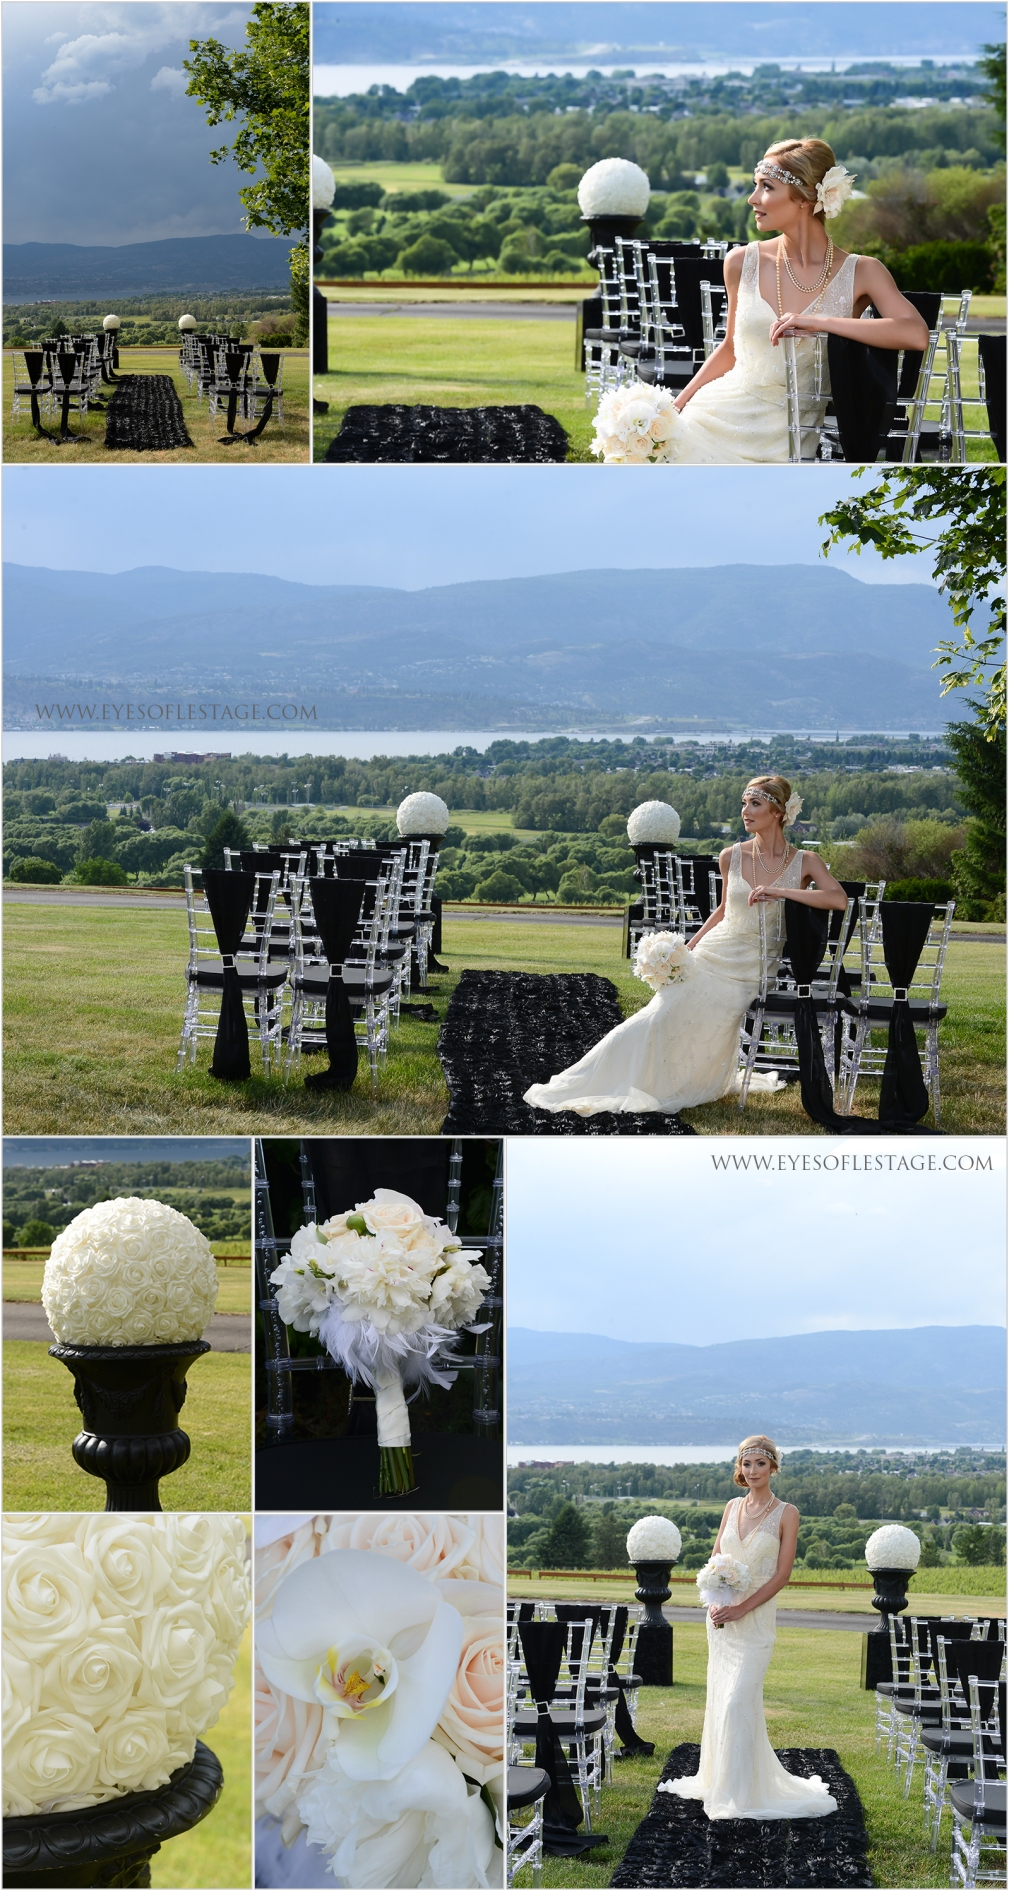 Tantalus winery Wedding Ceremony Venue, Decor and Floral by Stage Right Ect. Wedding gown by Morilee, Pronoias Headpiece;